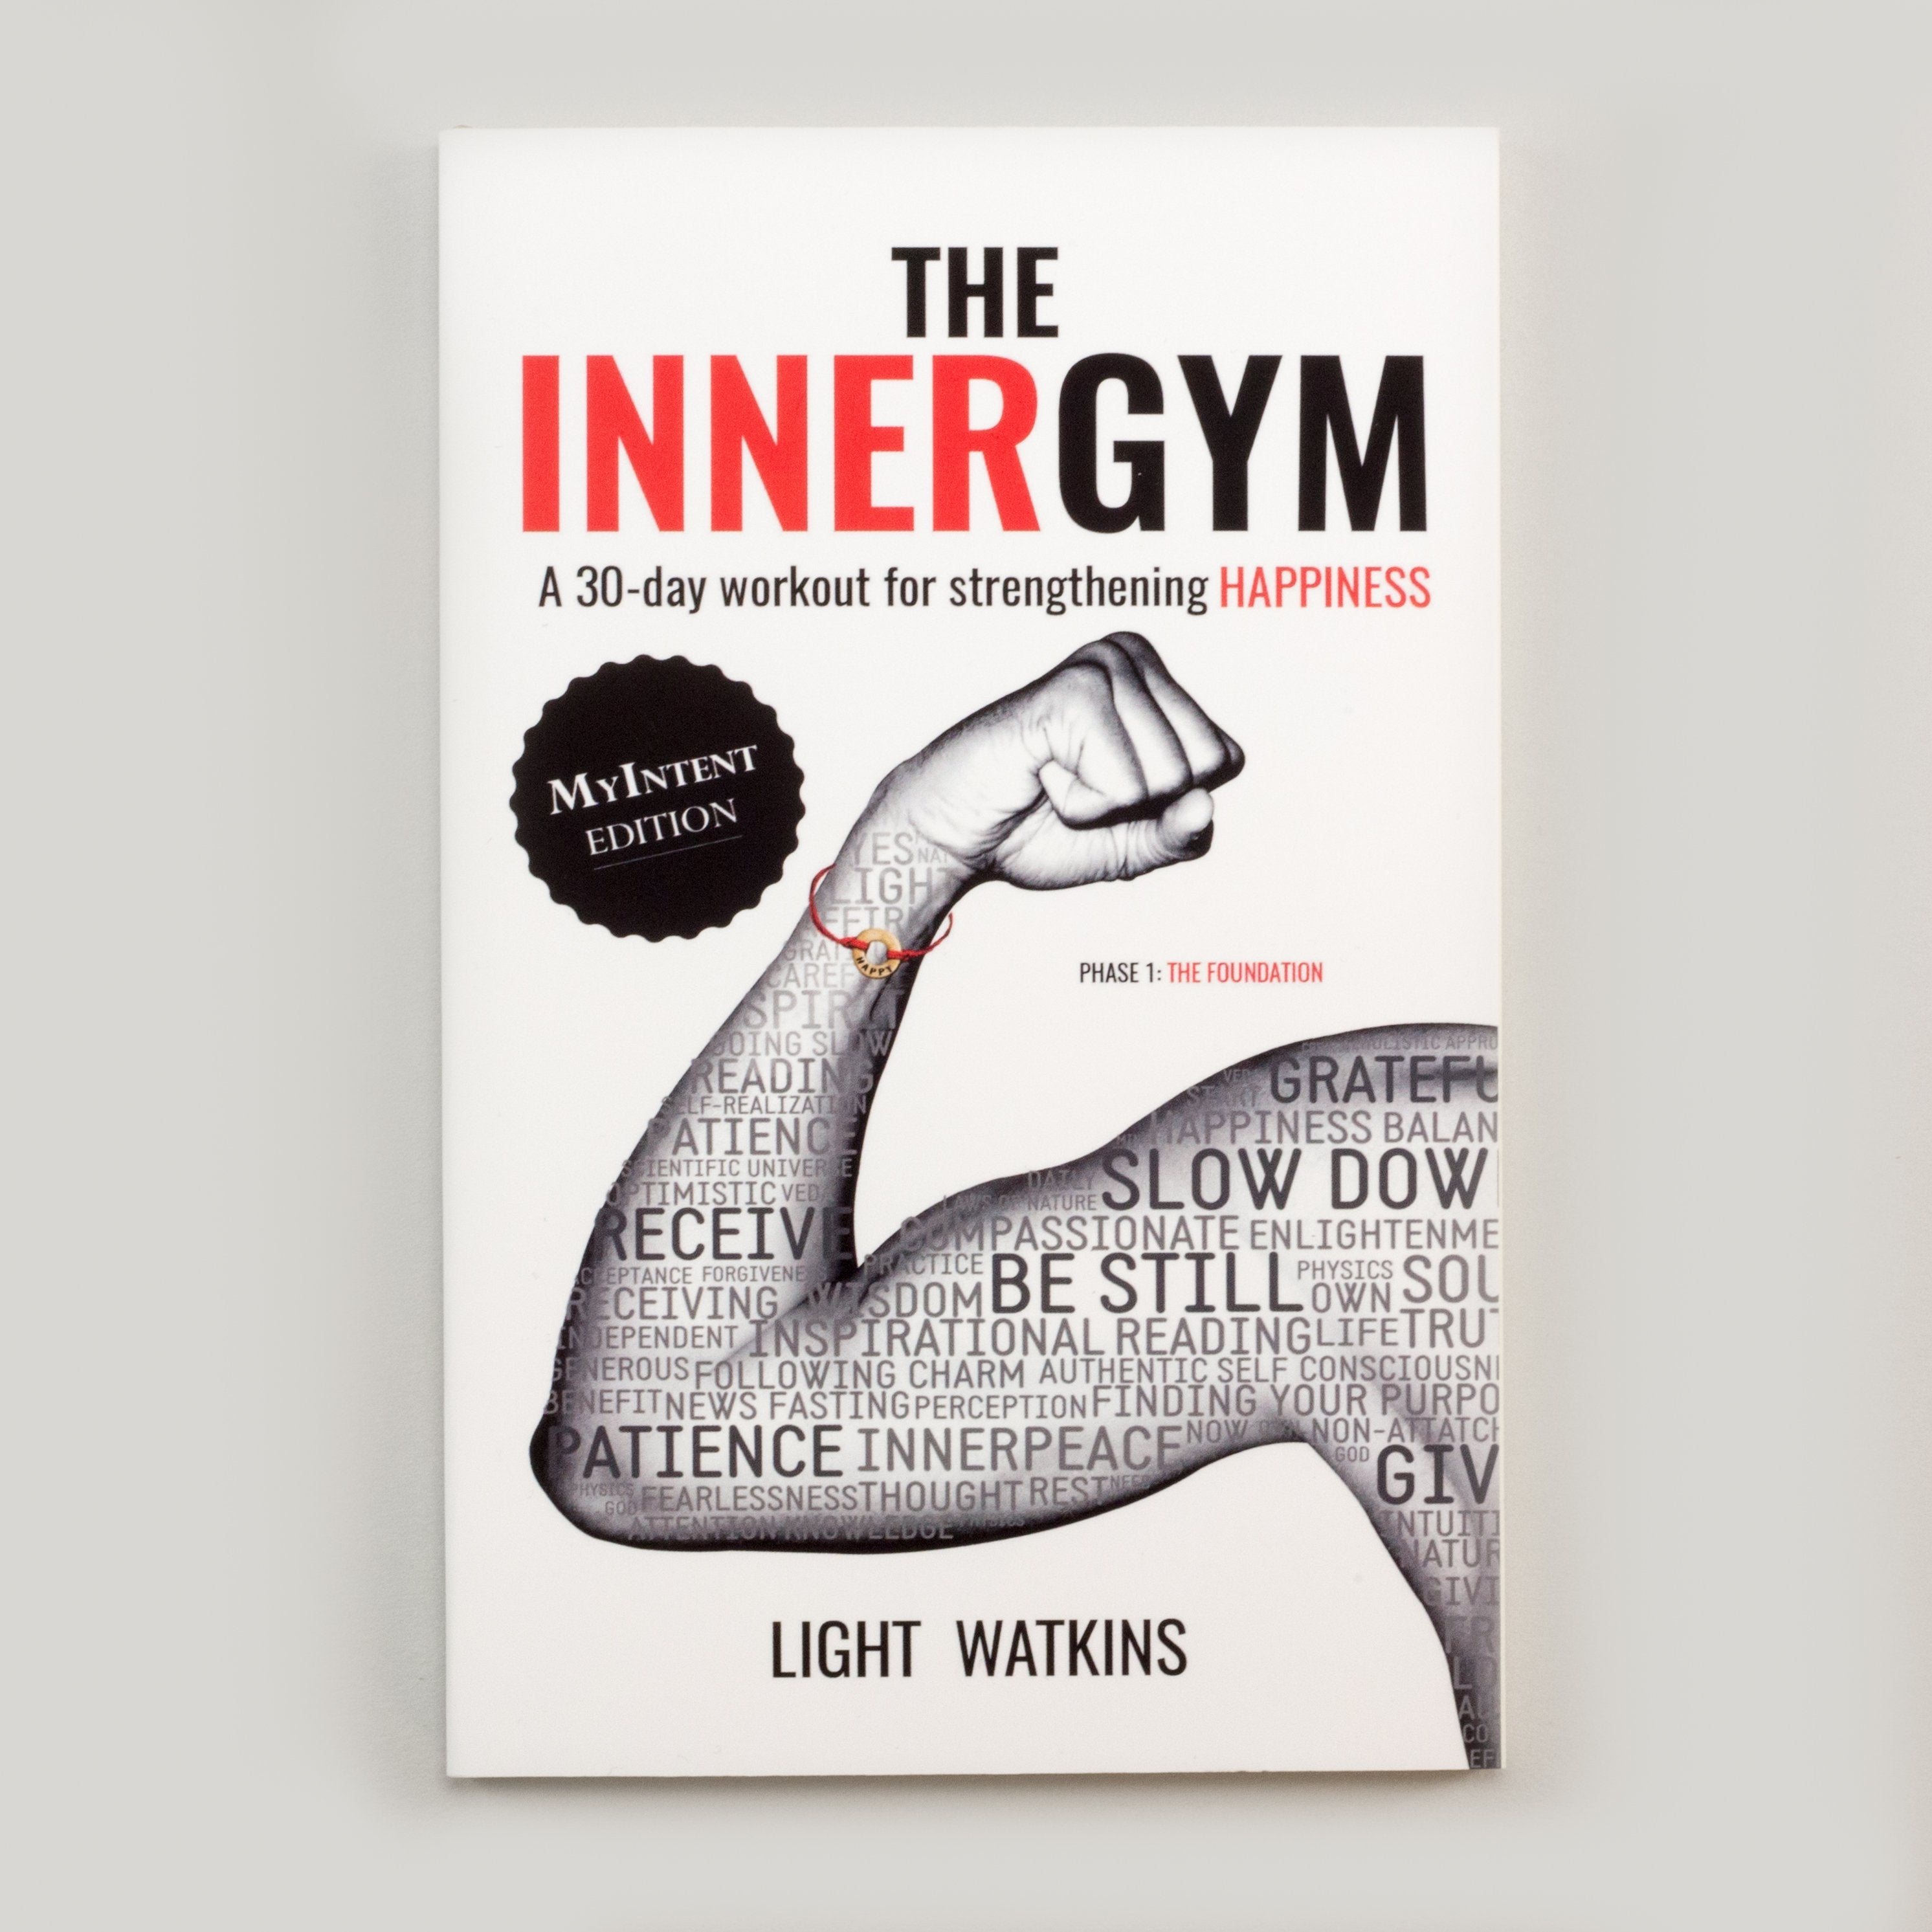 The Inner Gym by Light Watkins is for anyone looking for simple life-habits that impact happiness